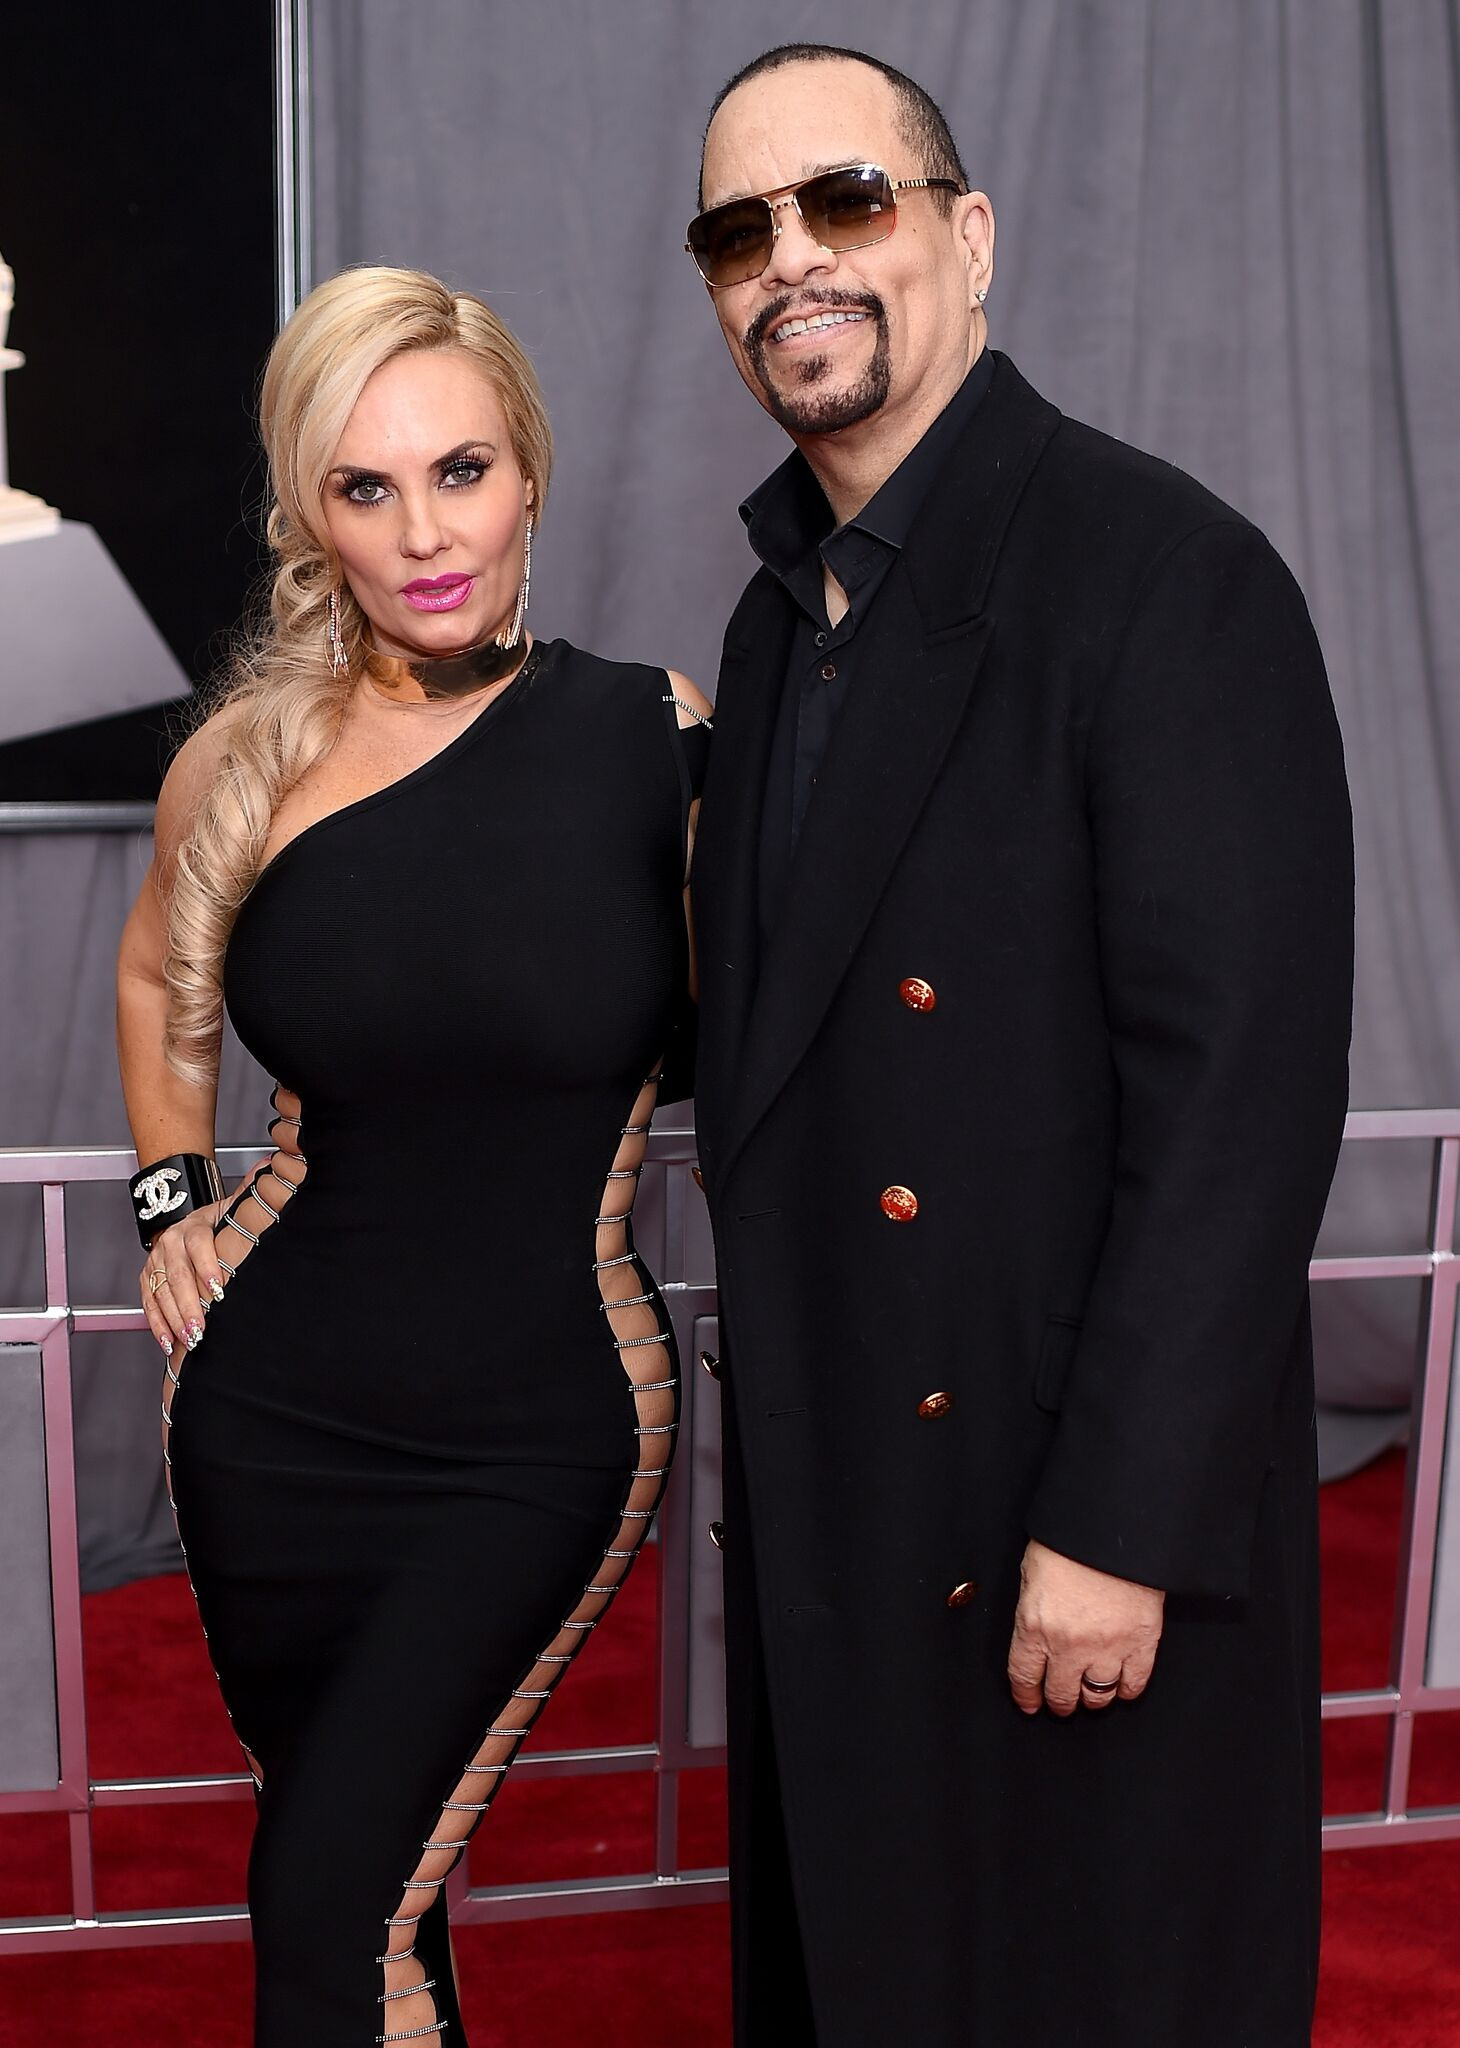 Coco Austin and recording artist Ice-T attend the 60th Annual GRAMMY Awards at Madison Square Garden | Getty Images